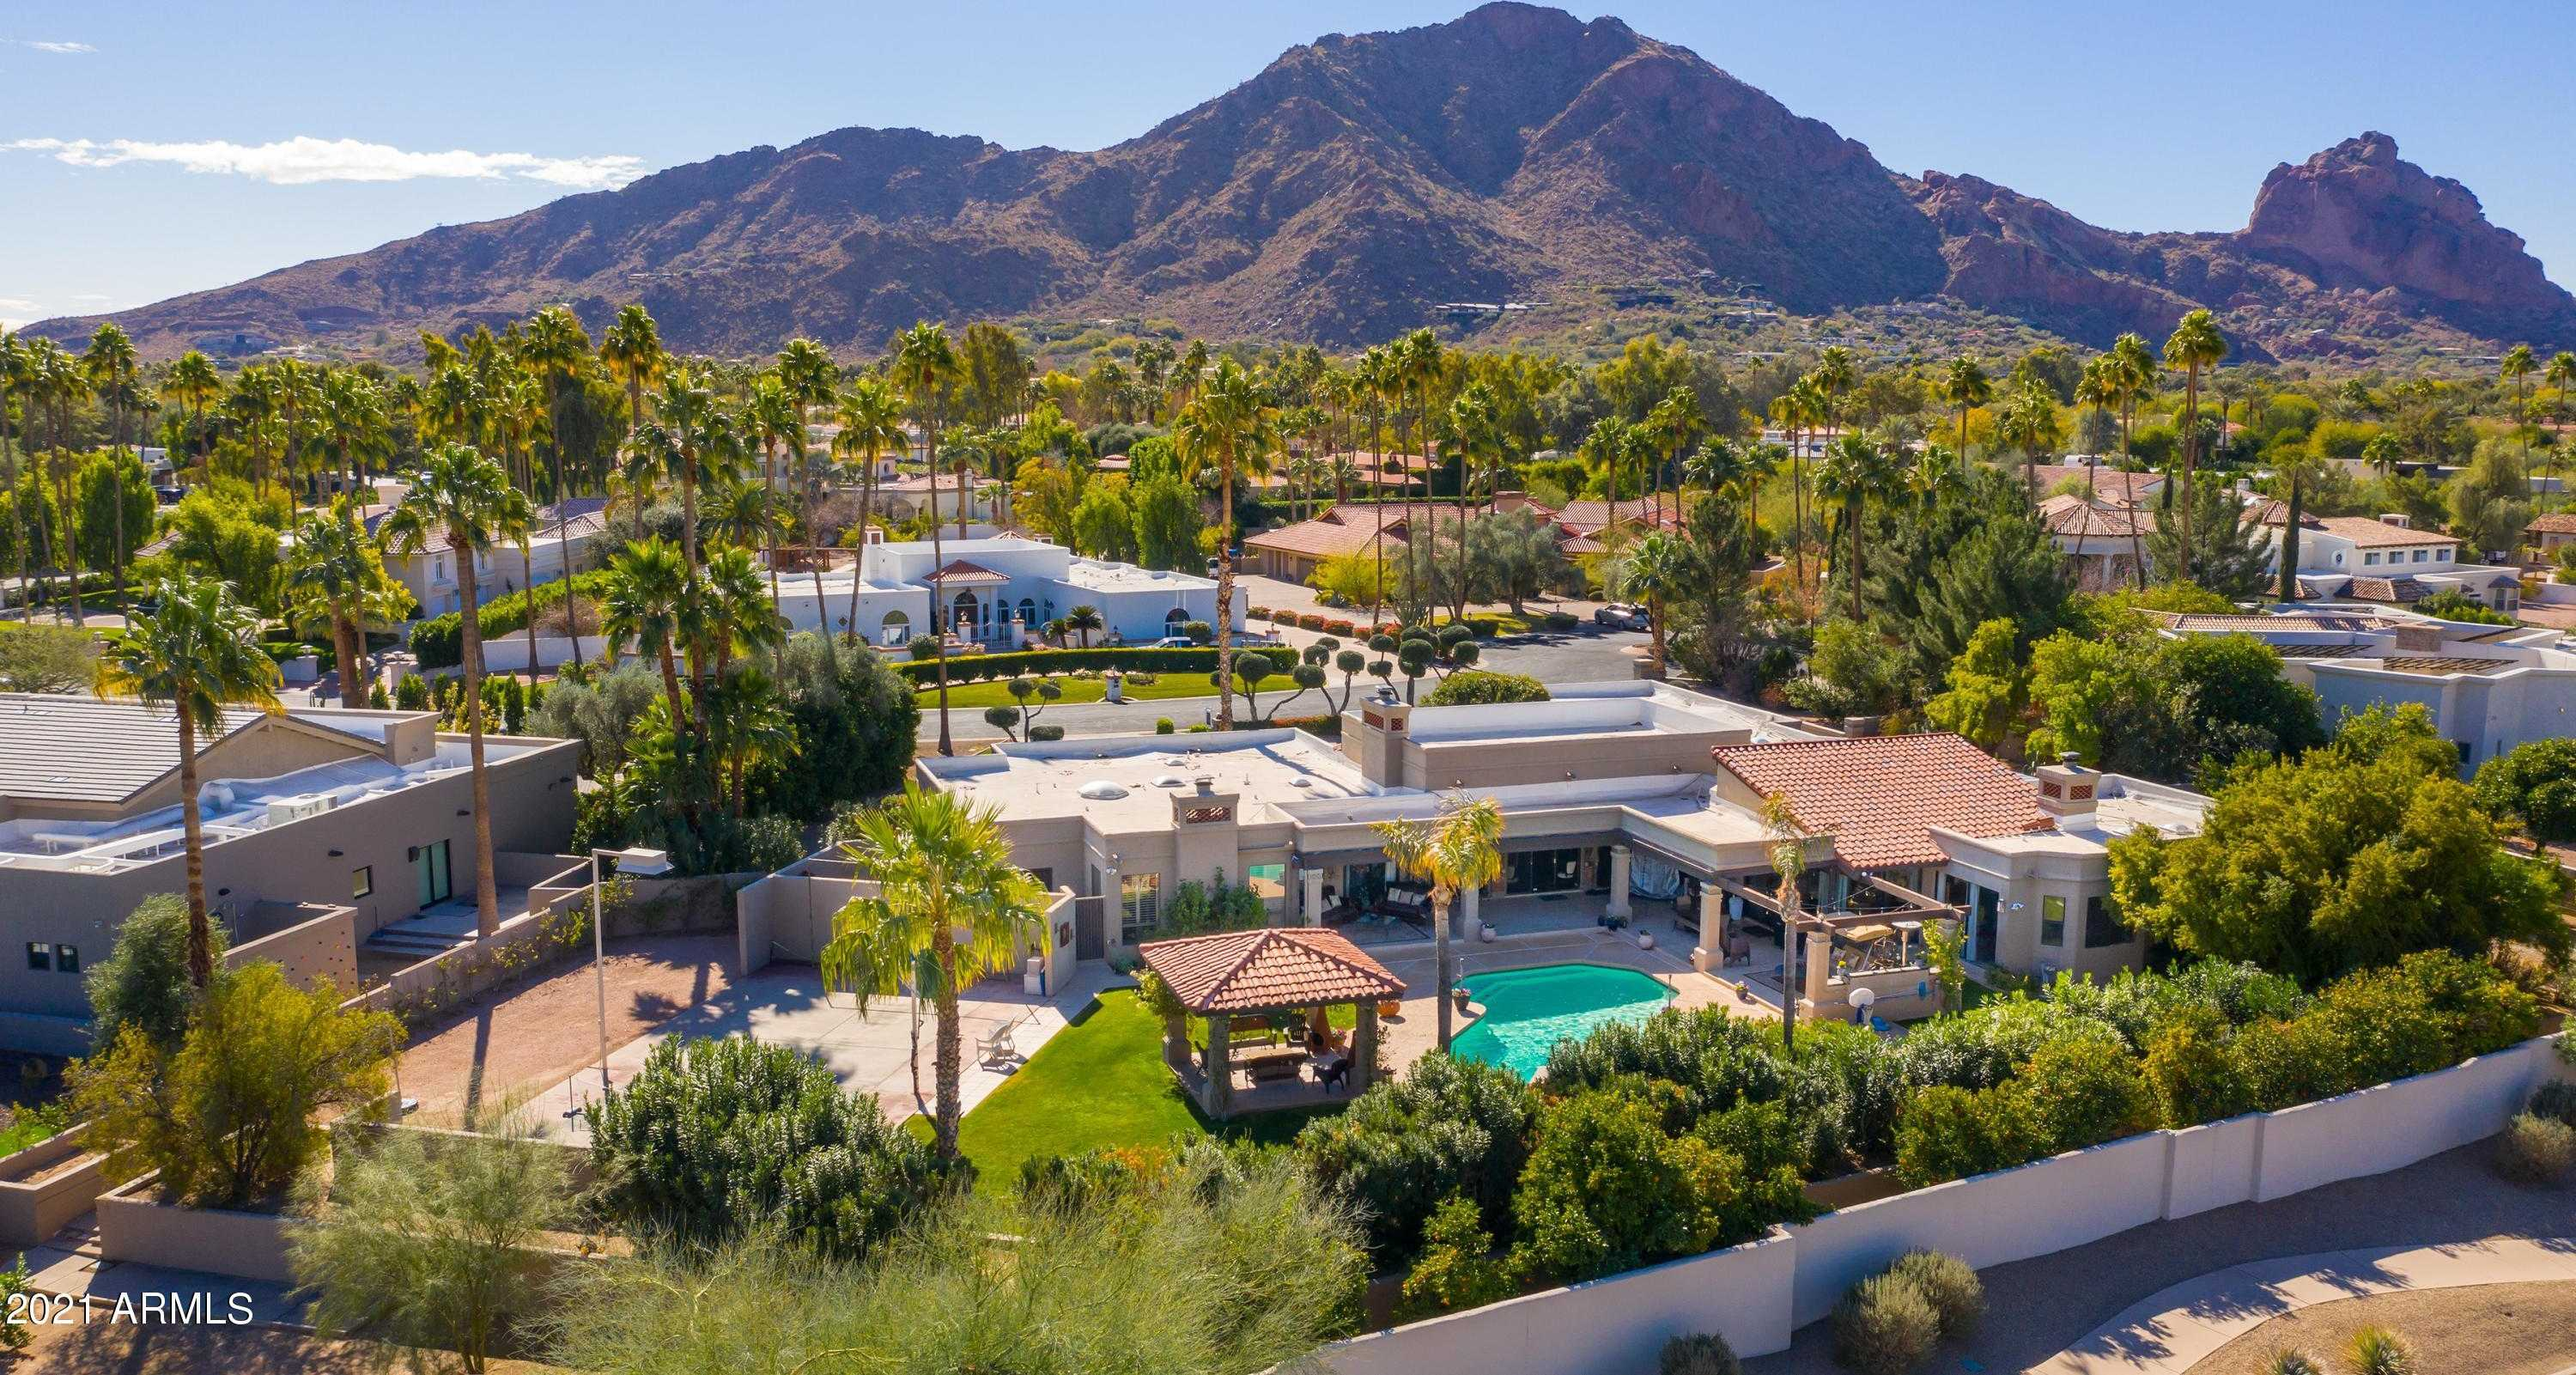 $2,345,000 - 6Br/6Ba - Home for Sale in Finisterre, Paradise Valley